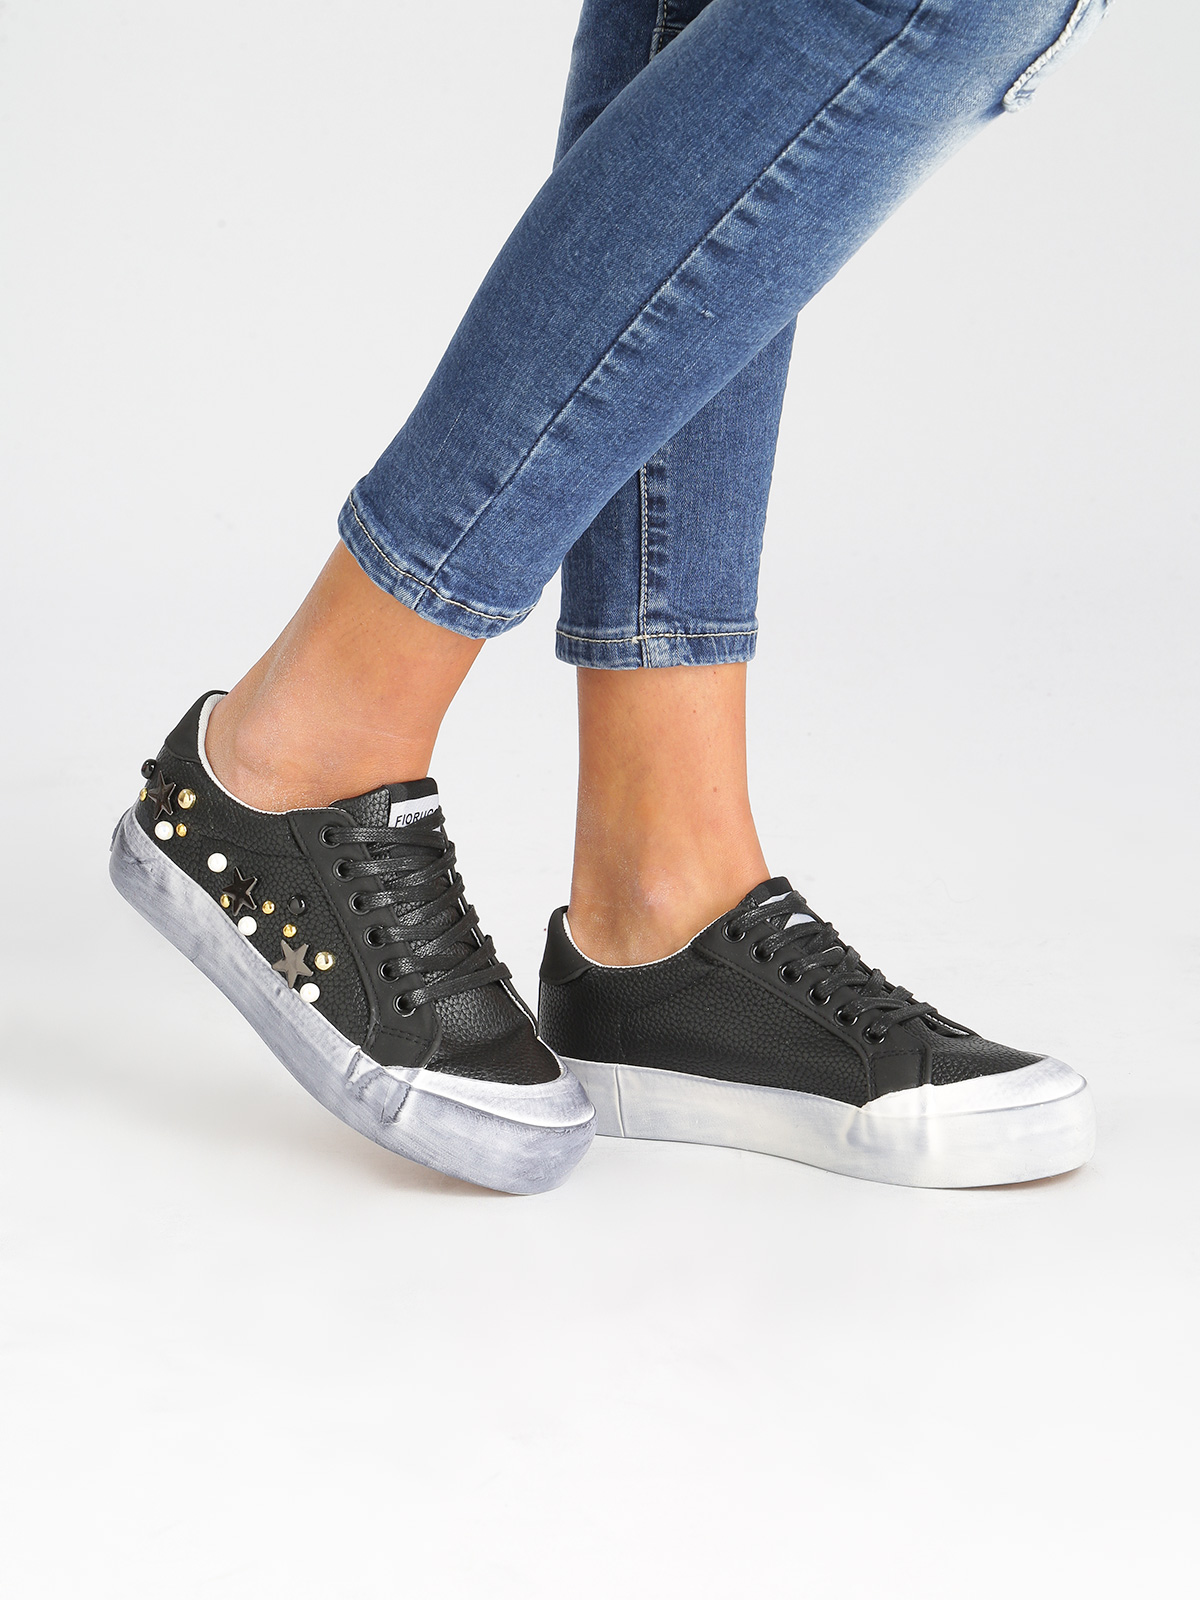 Sneakers With Platform And Studs